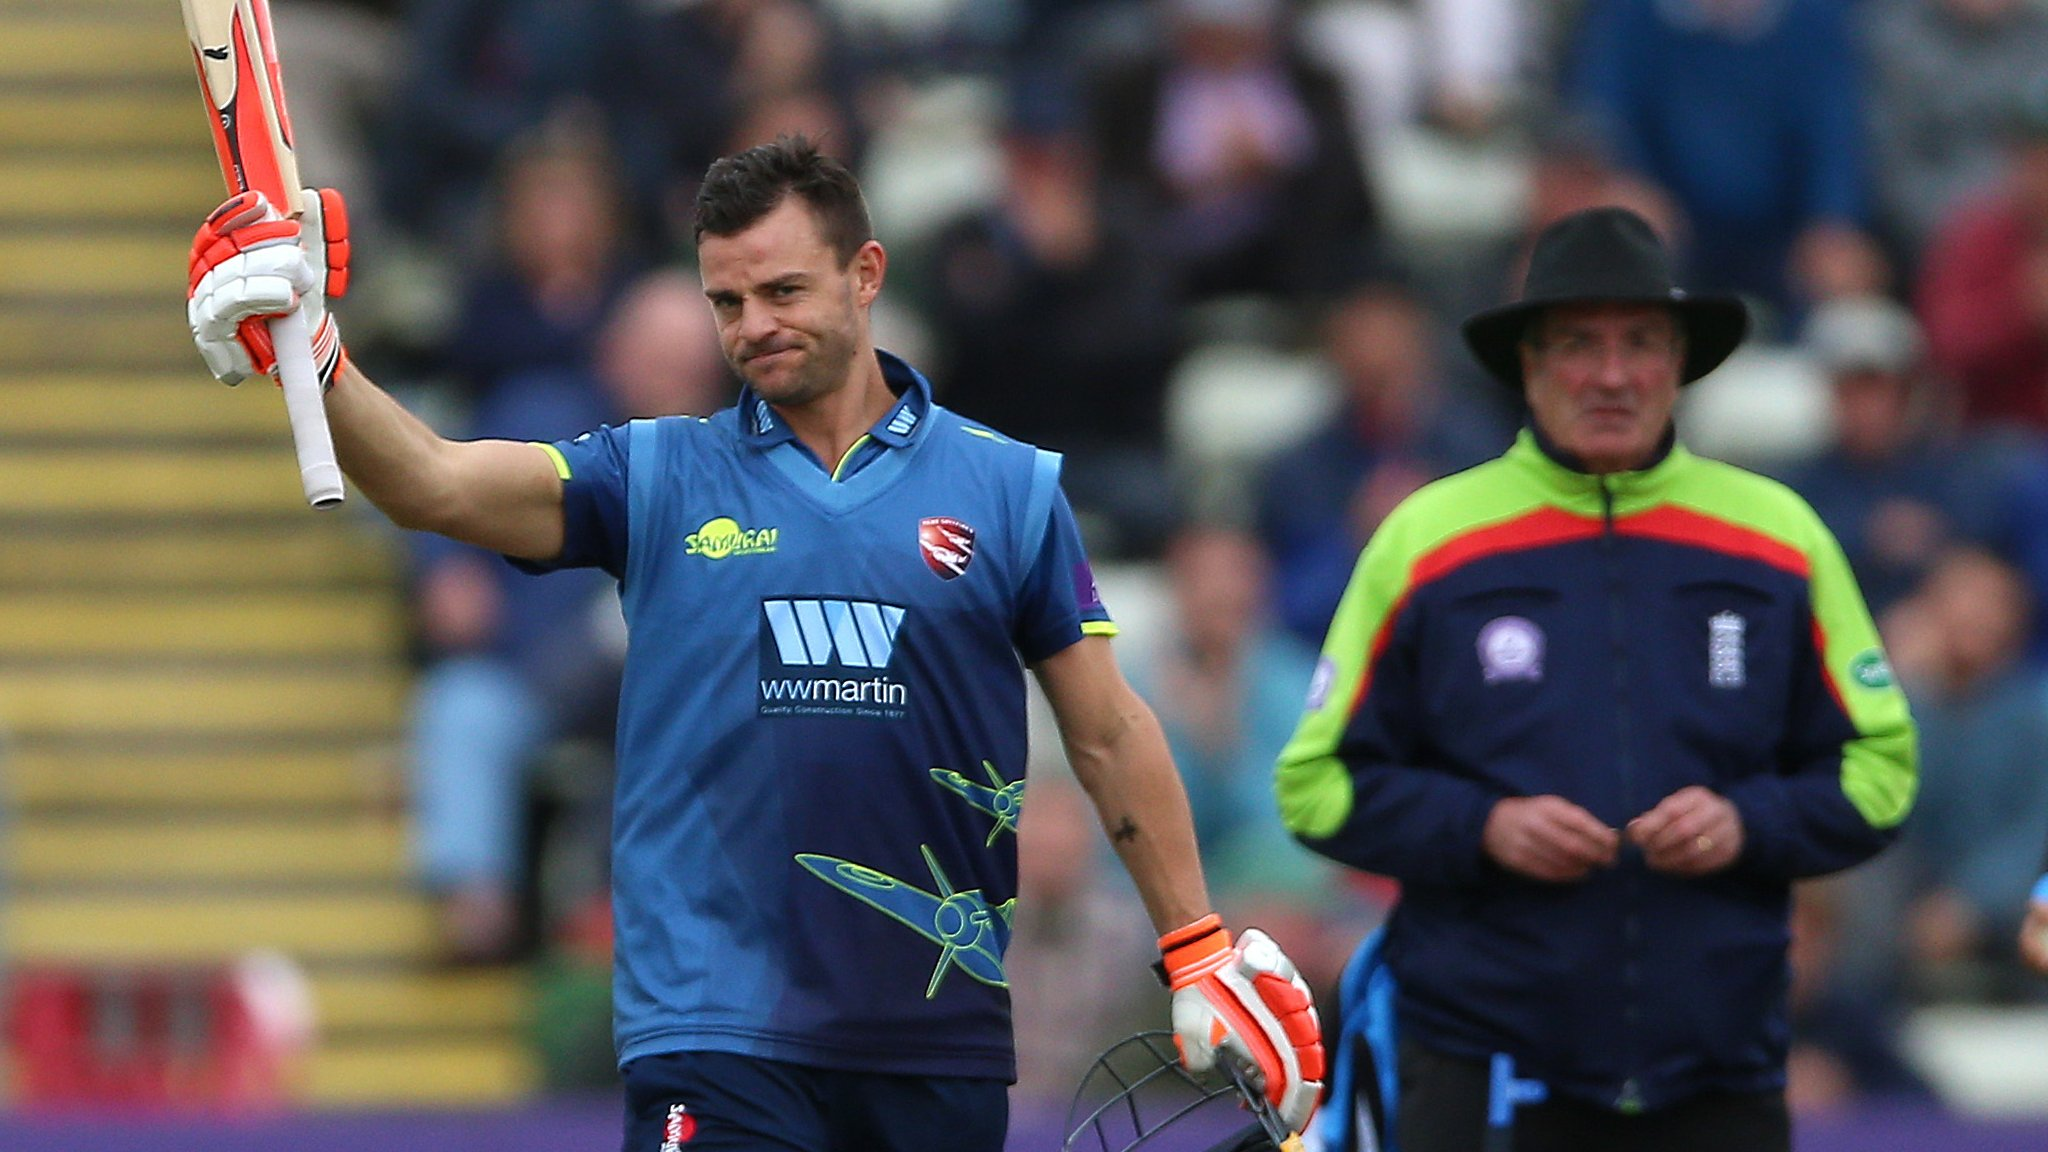 One-Day Cup: Heino Kuhn century leads Kent to win over Worcestershire